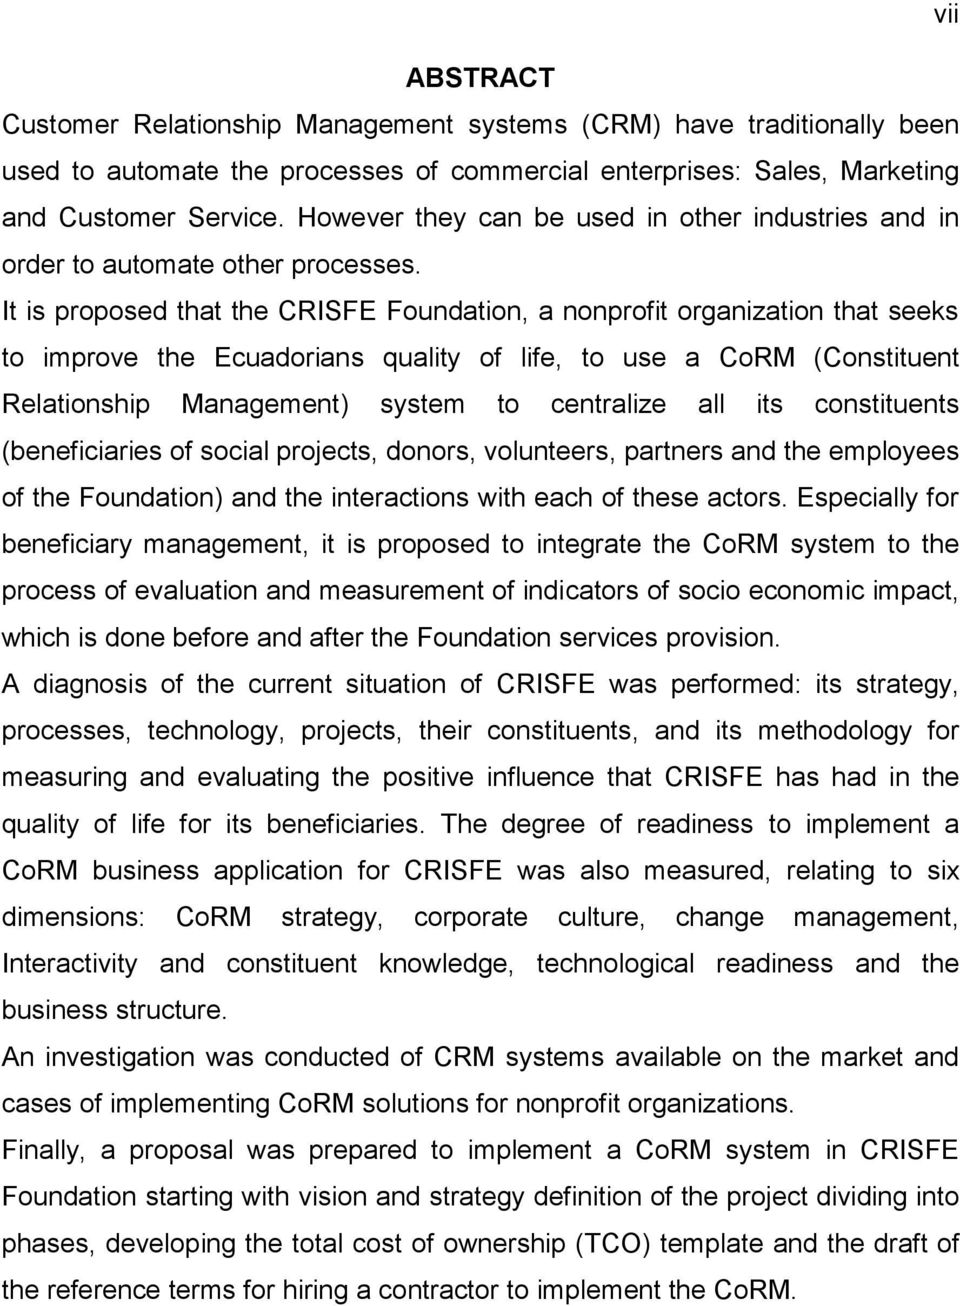 It is proposed that the CRISFE Foundation, a nonprofit organization that seeks to improve the Ecuadorians quality of life, to use a CoRM (Constituent Relationship Management) system to centralize all